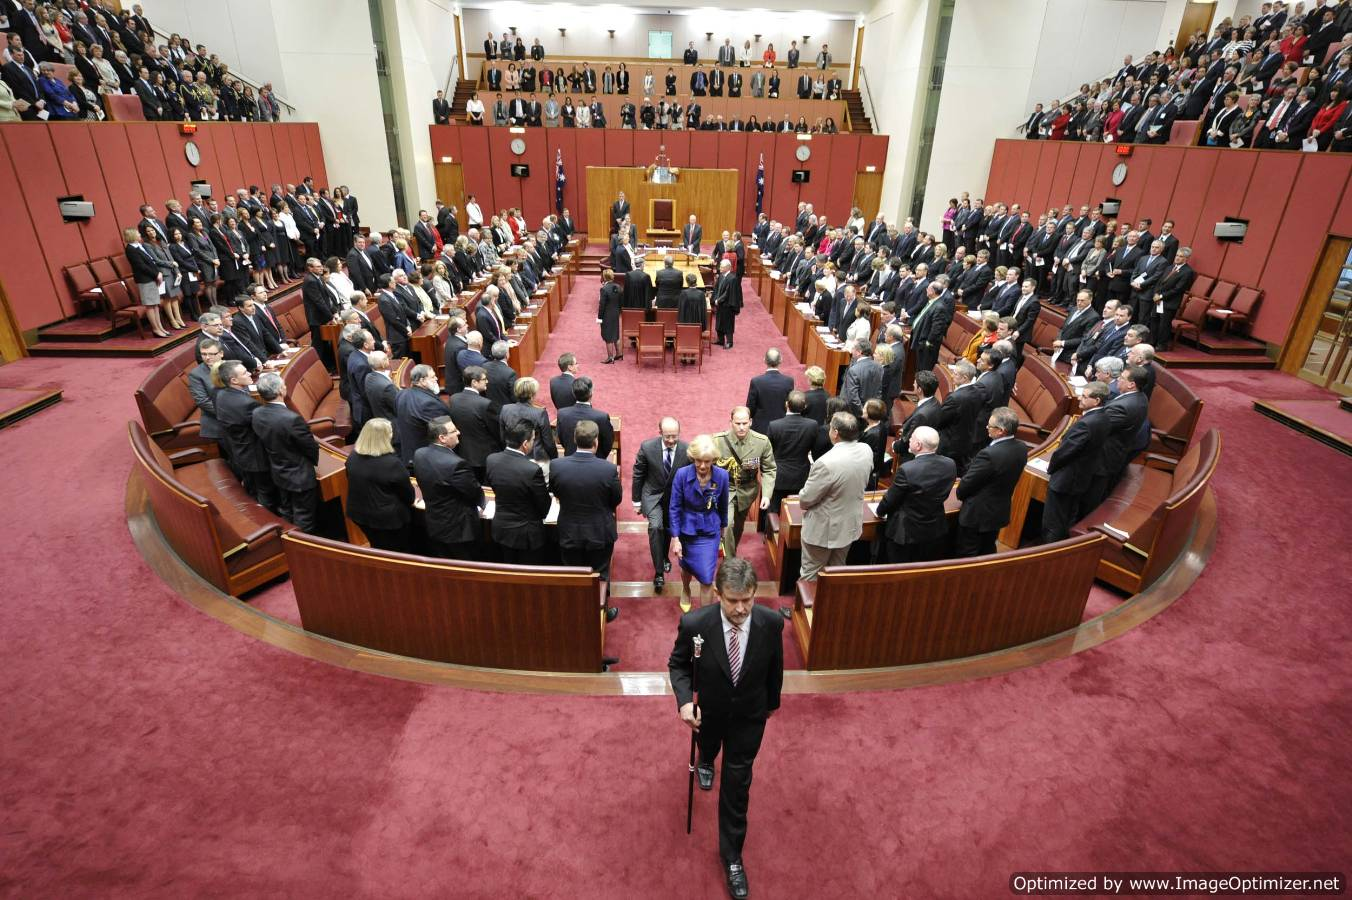 The opening of Paliament on 28 September 2010